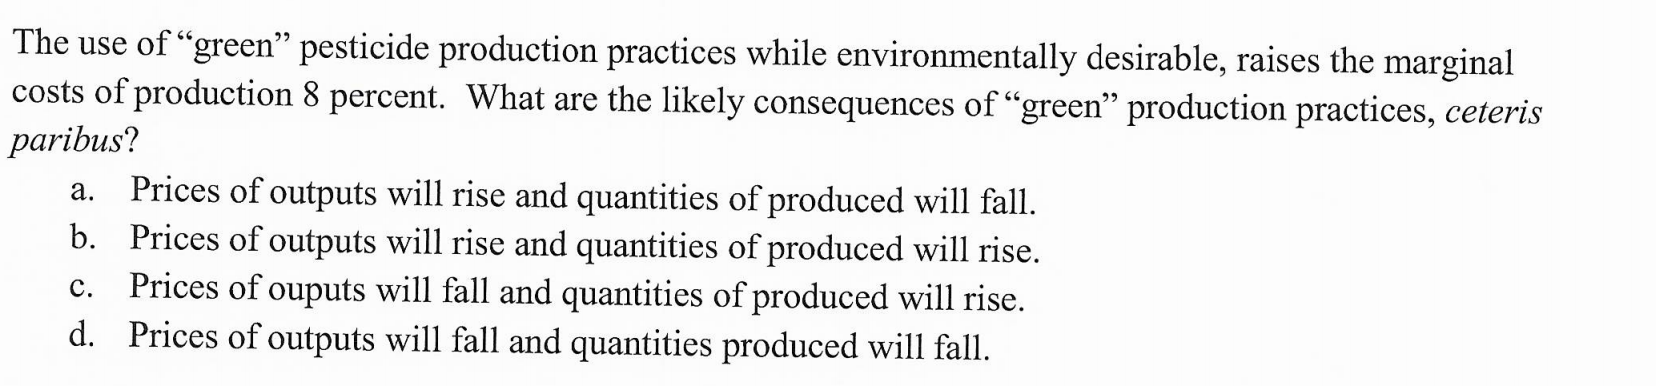 "The use of ""green"" pesticide production practices while environmentally desirable, raises the marginal costs of production 8 percent. What are the likely consequences of ""green"" production practices, ceteris paribus? Prices of outputs will rise and quantities of produced will fall. b. Prices of outputs will rise and quantities of produced will rise Prices of ouputs will fall and quantities of produced will rise. d. Prices of outputs will fall and quantities produced will fall. а. с."